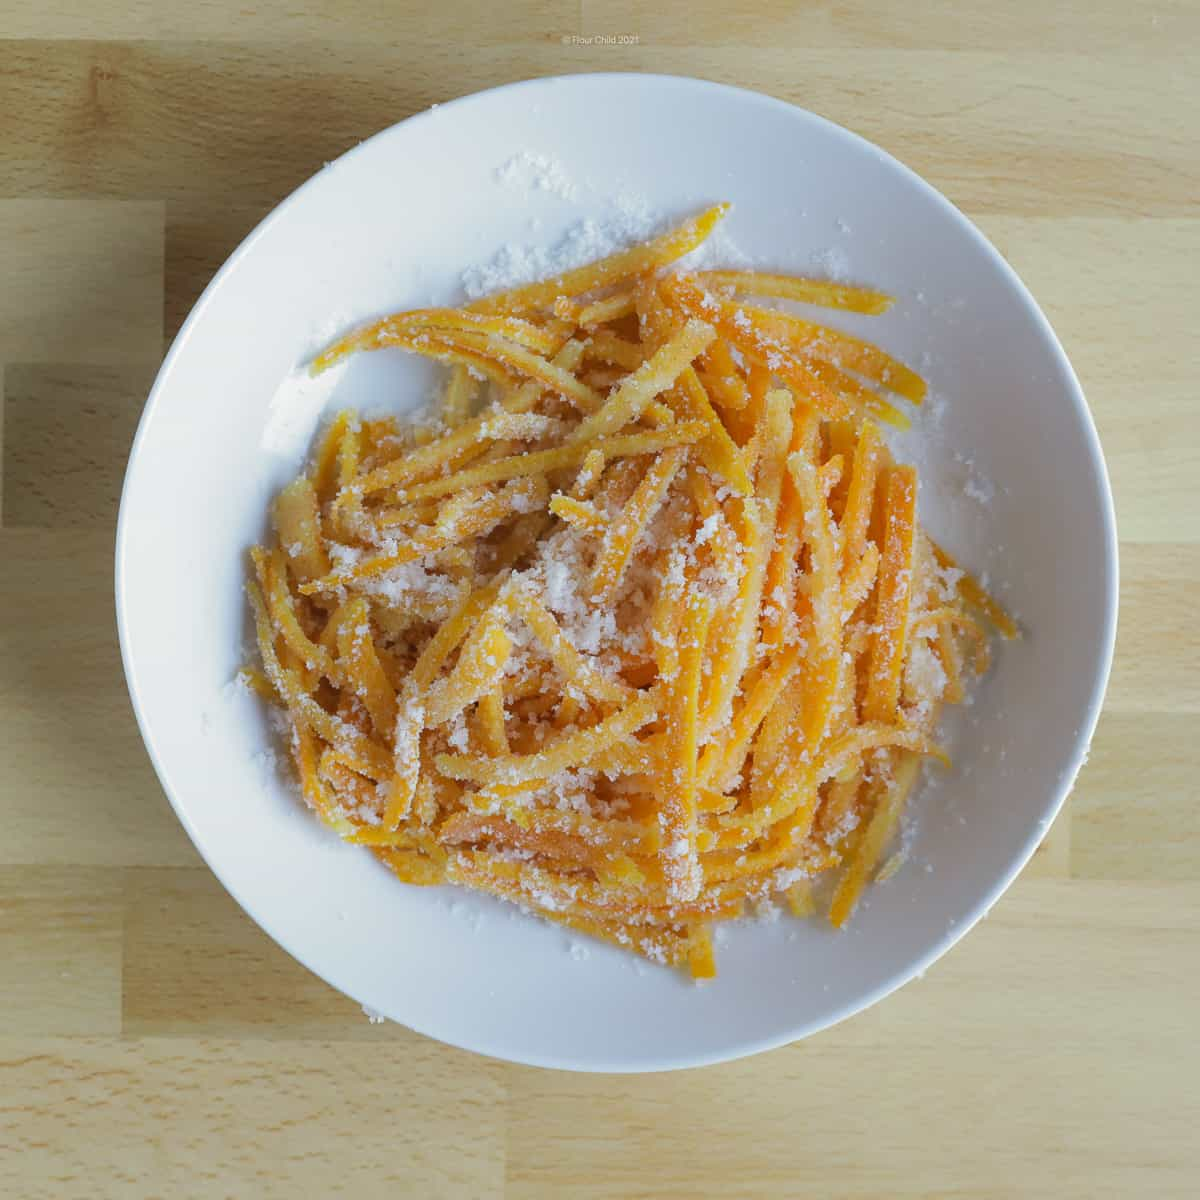 Candied orange peel piled in a white bowl, ready to use as a garnish or eat as a candy